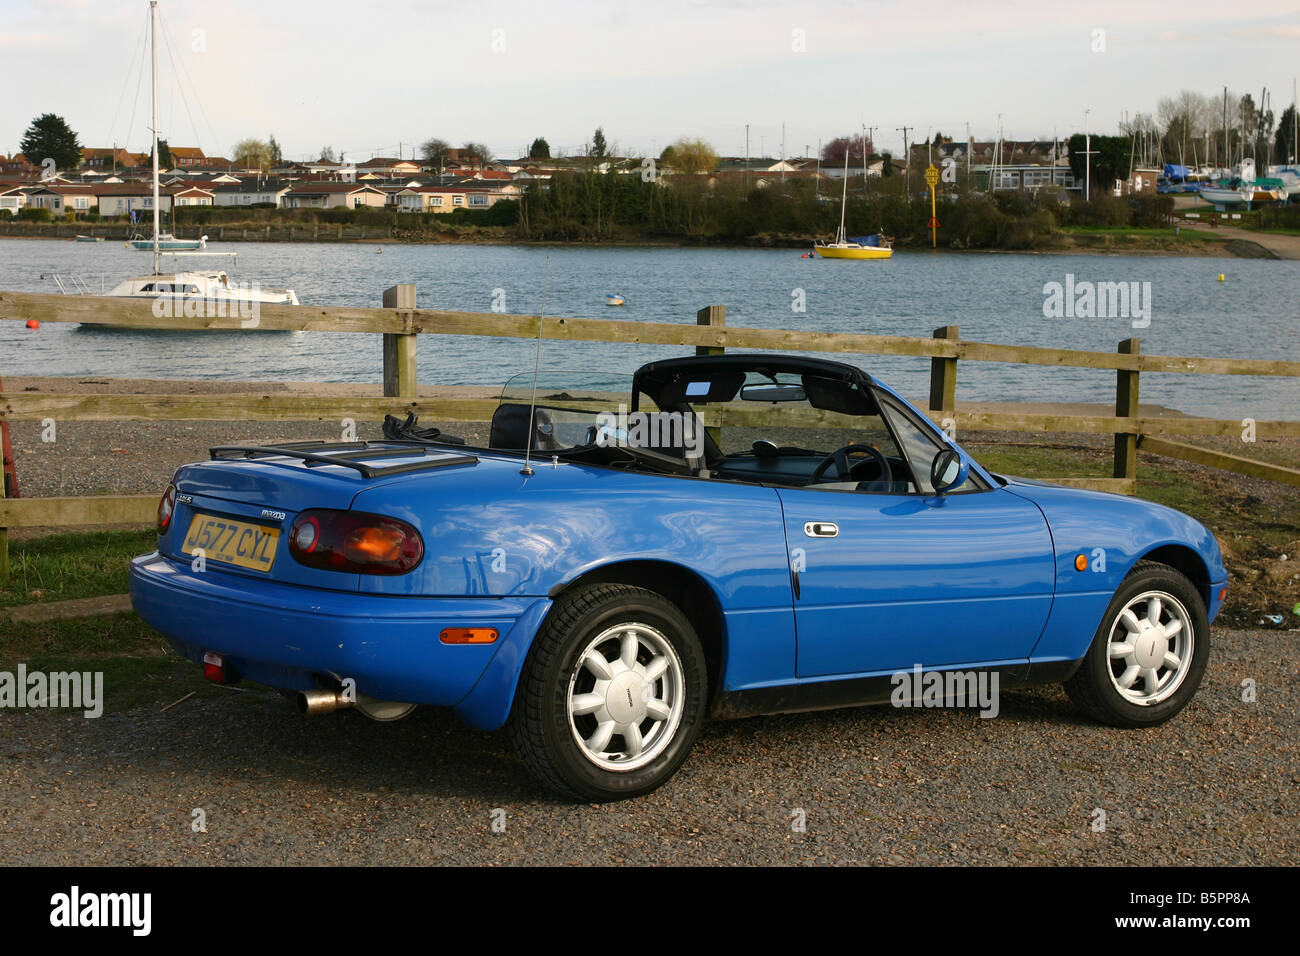 Mazda MX5 Mk1 2 seater sports car with roof down. Riverside setting